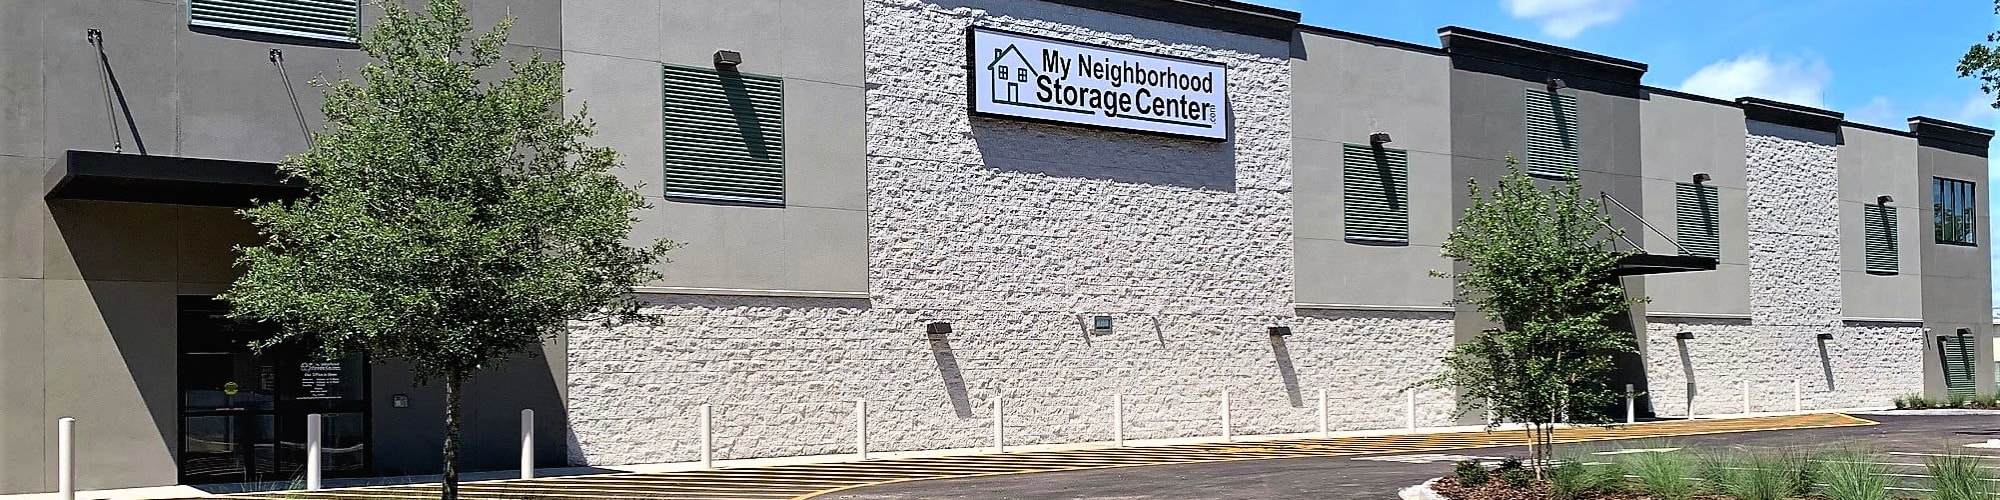 Self storage features at My Neighborhood Storage Center in Jacksonville, Florida